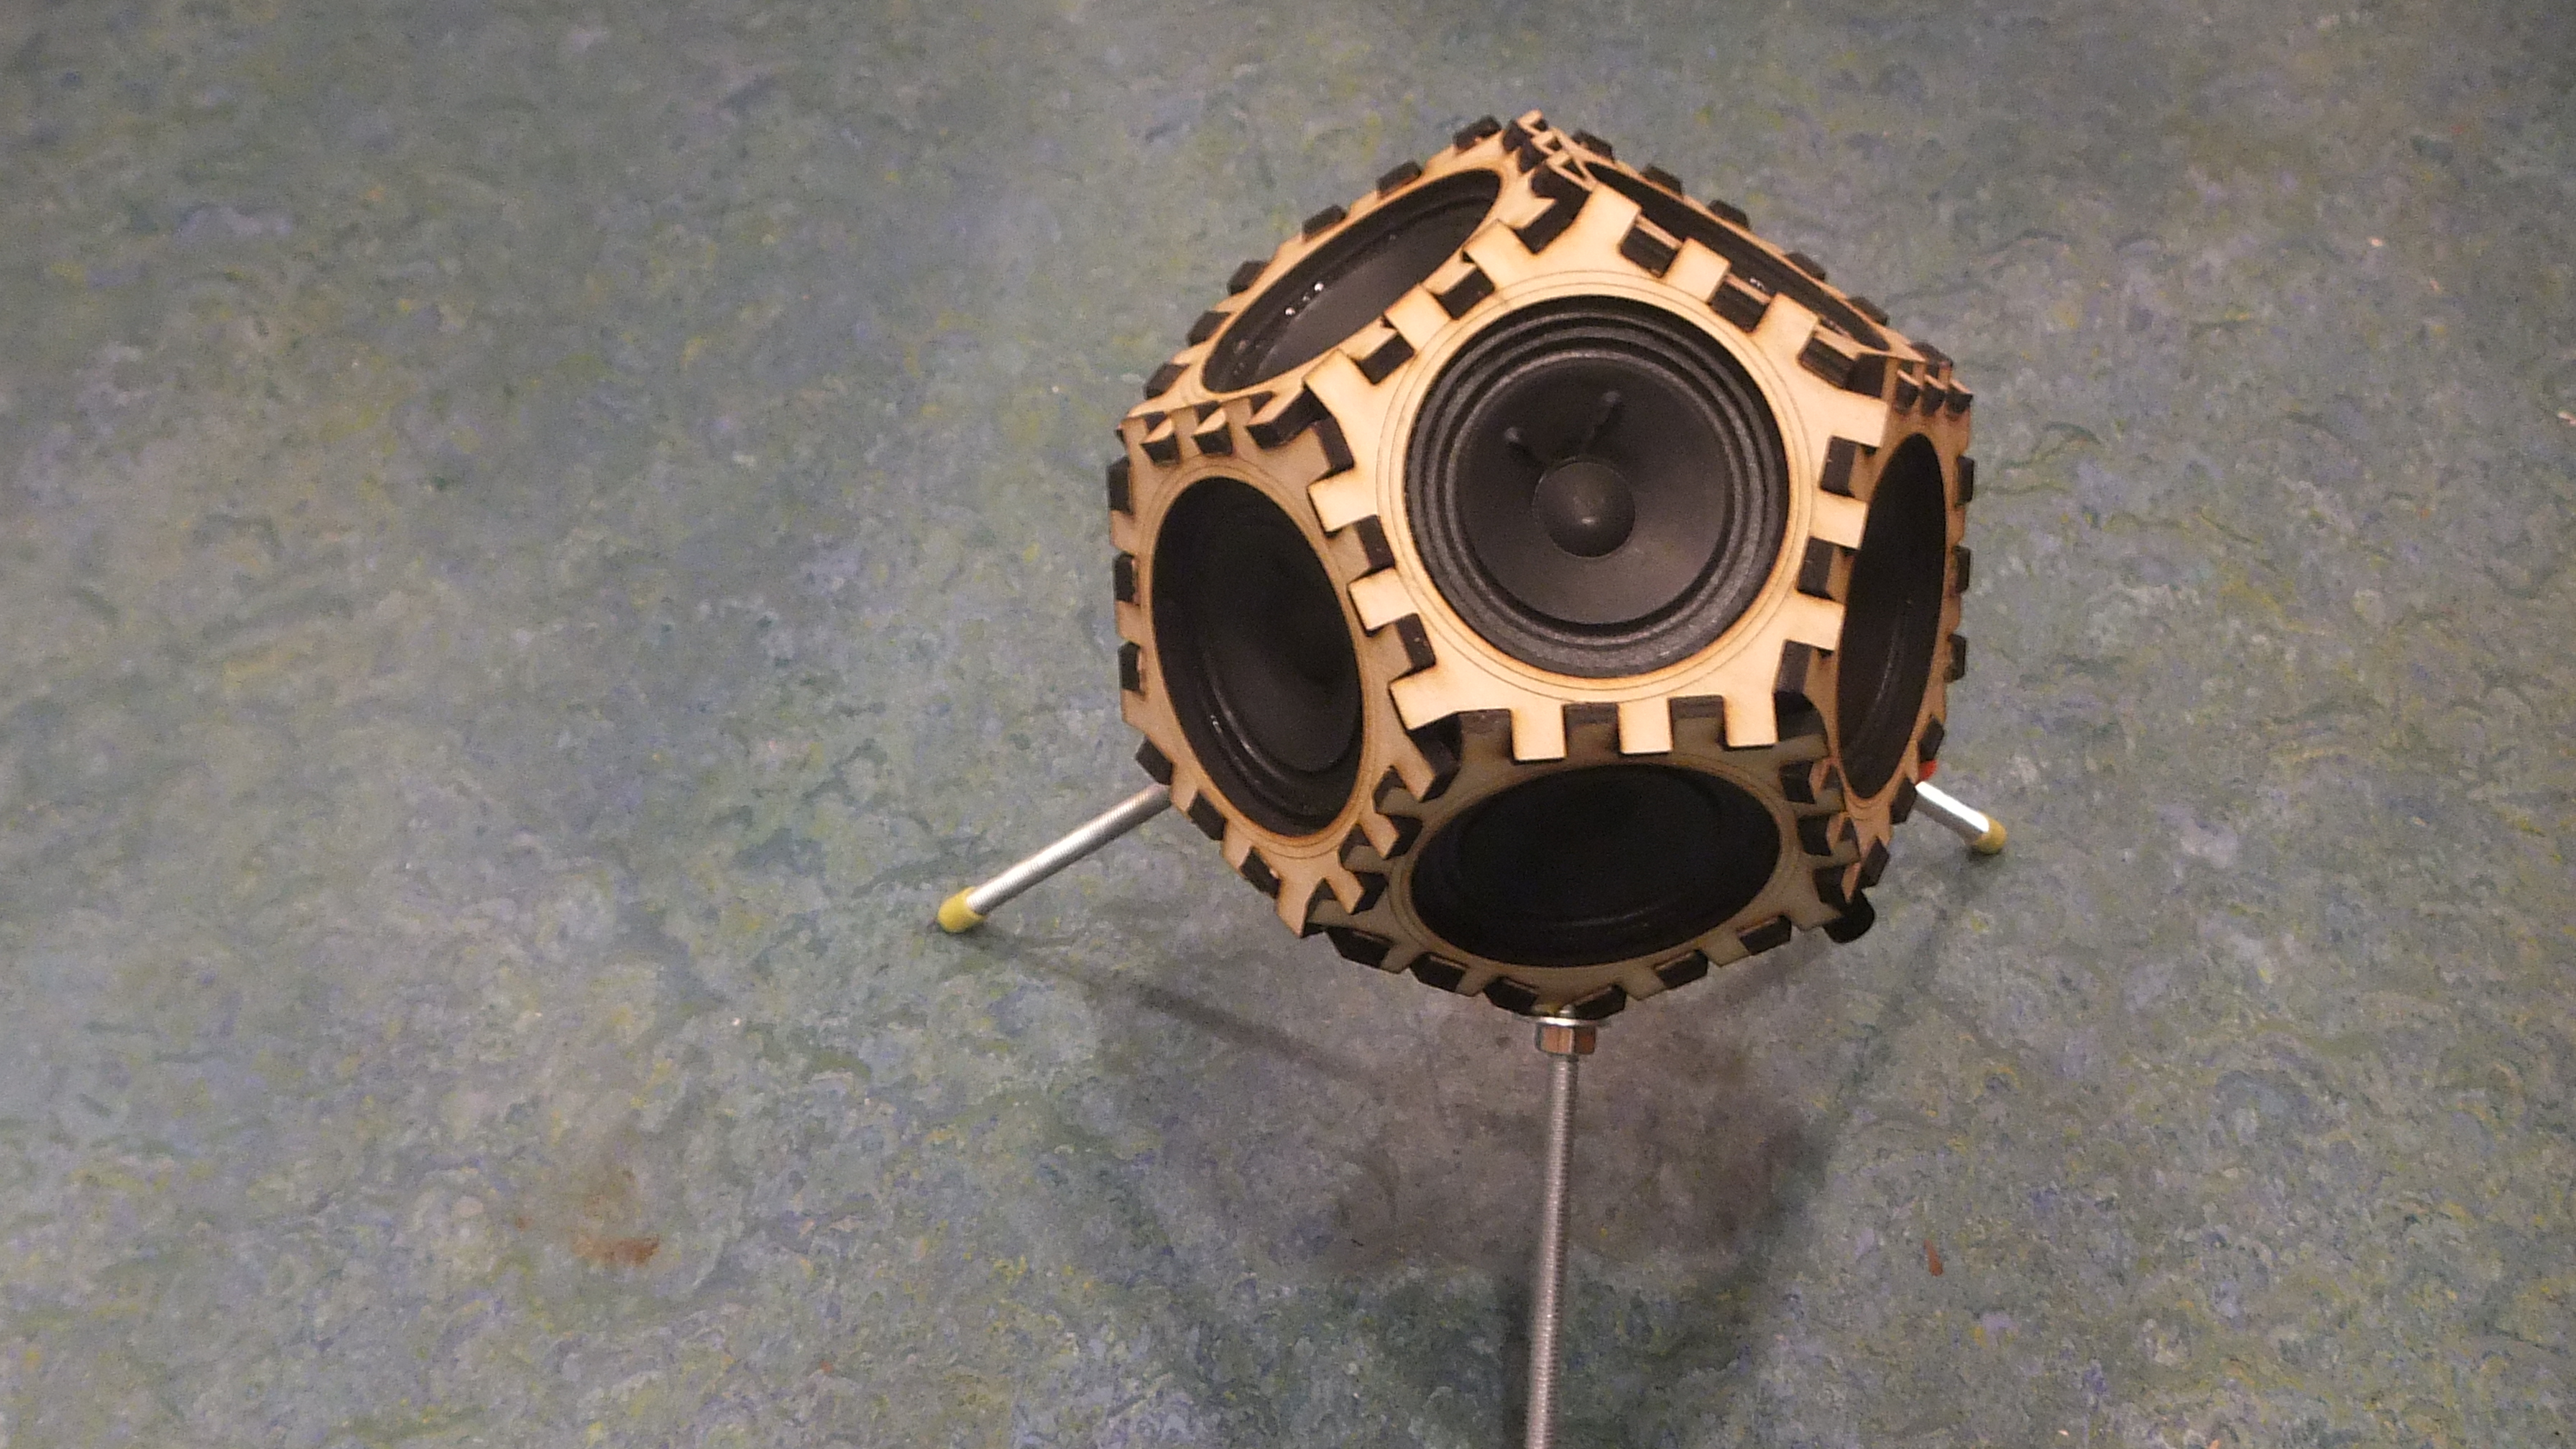 Sputnik 17 Dodecahedron loudspeakers by Wootfish Thingiverse